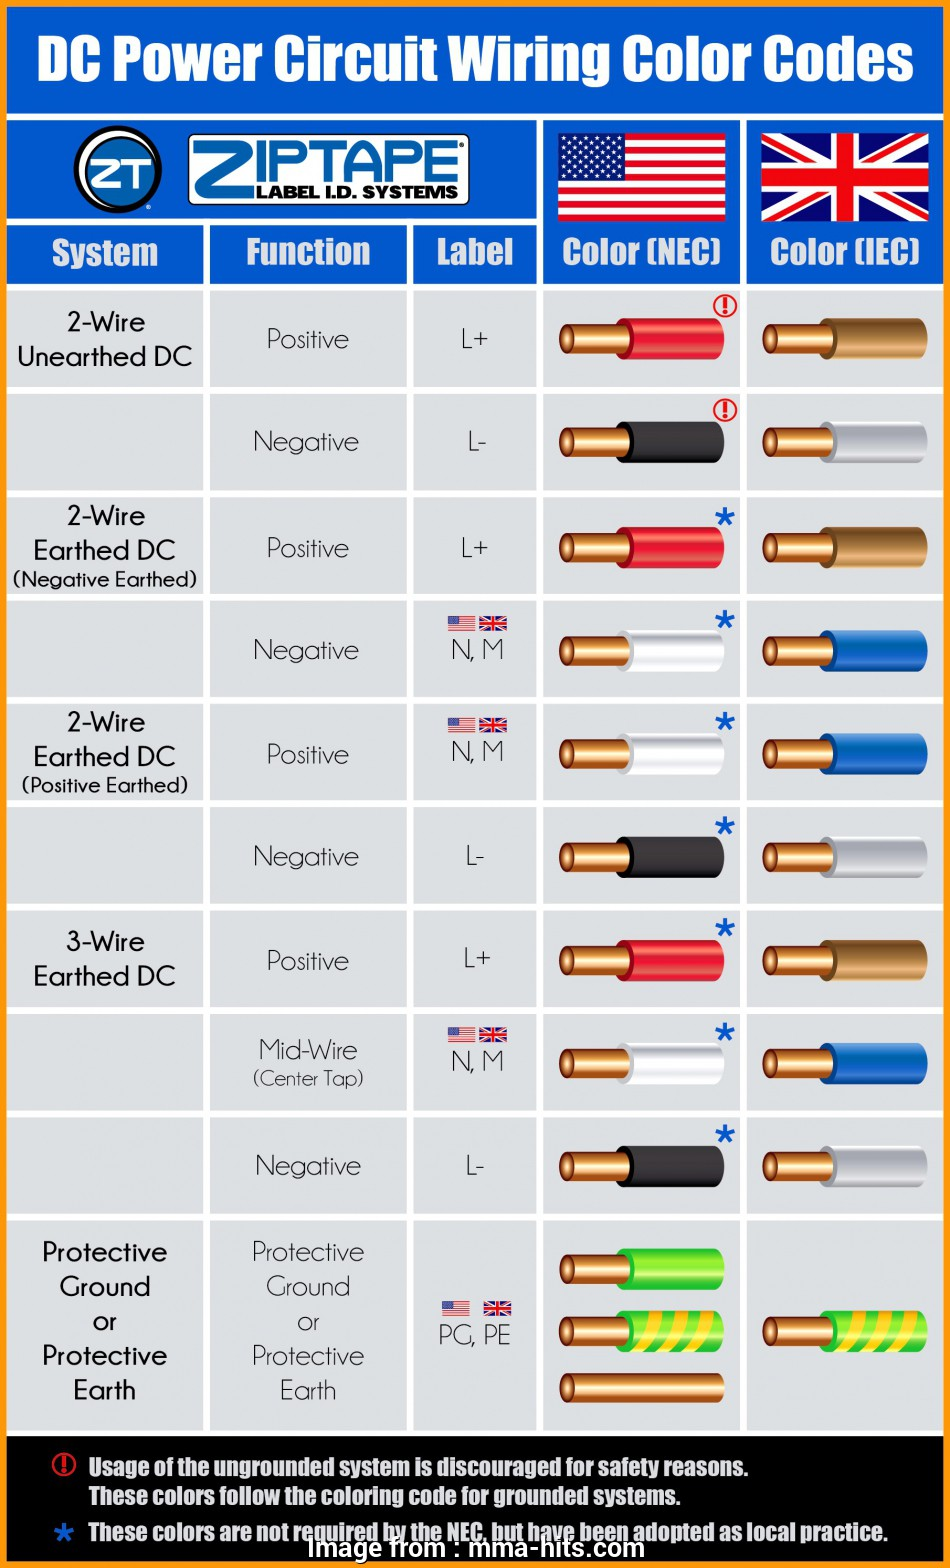 electrical wire colors pdf Delectable Power Circuit Wiring Color Codes Label Systems Blog Electrical Code Chart Resistor Coding Electronic Cable Wire, Iec Tape Panel Conductor 11 Best Electrical Wire Colors Pdf Images